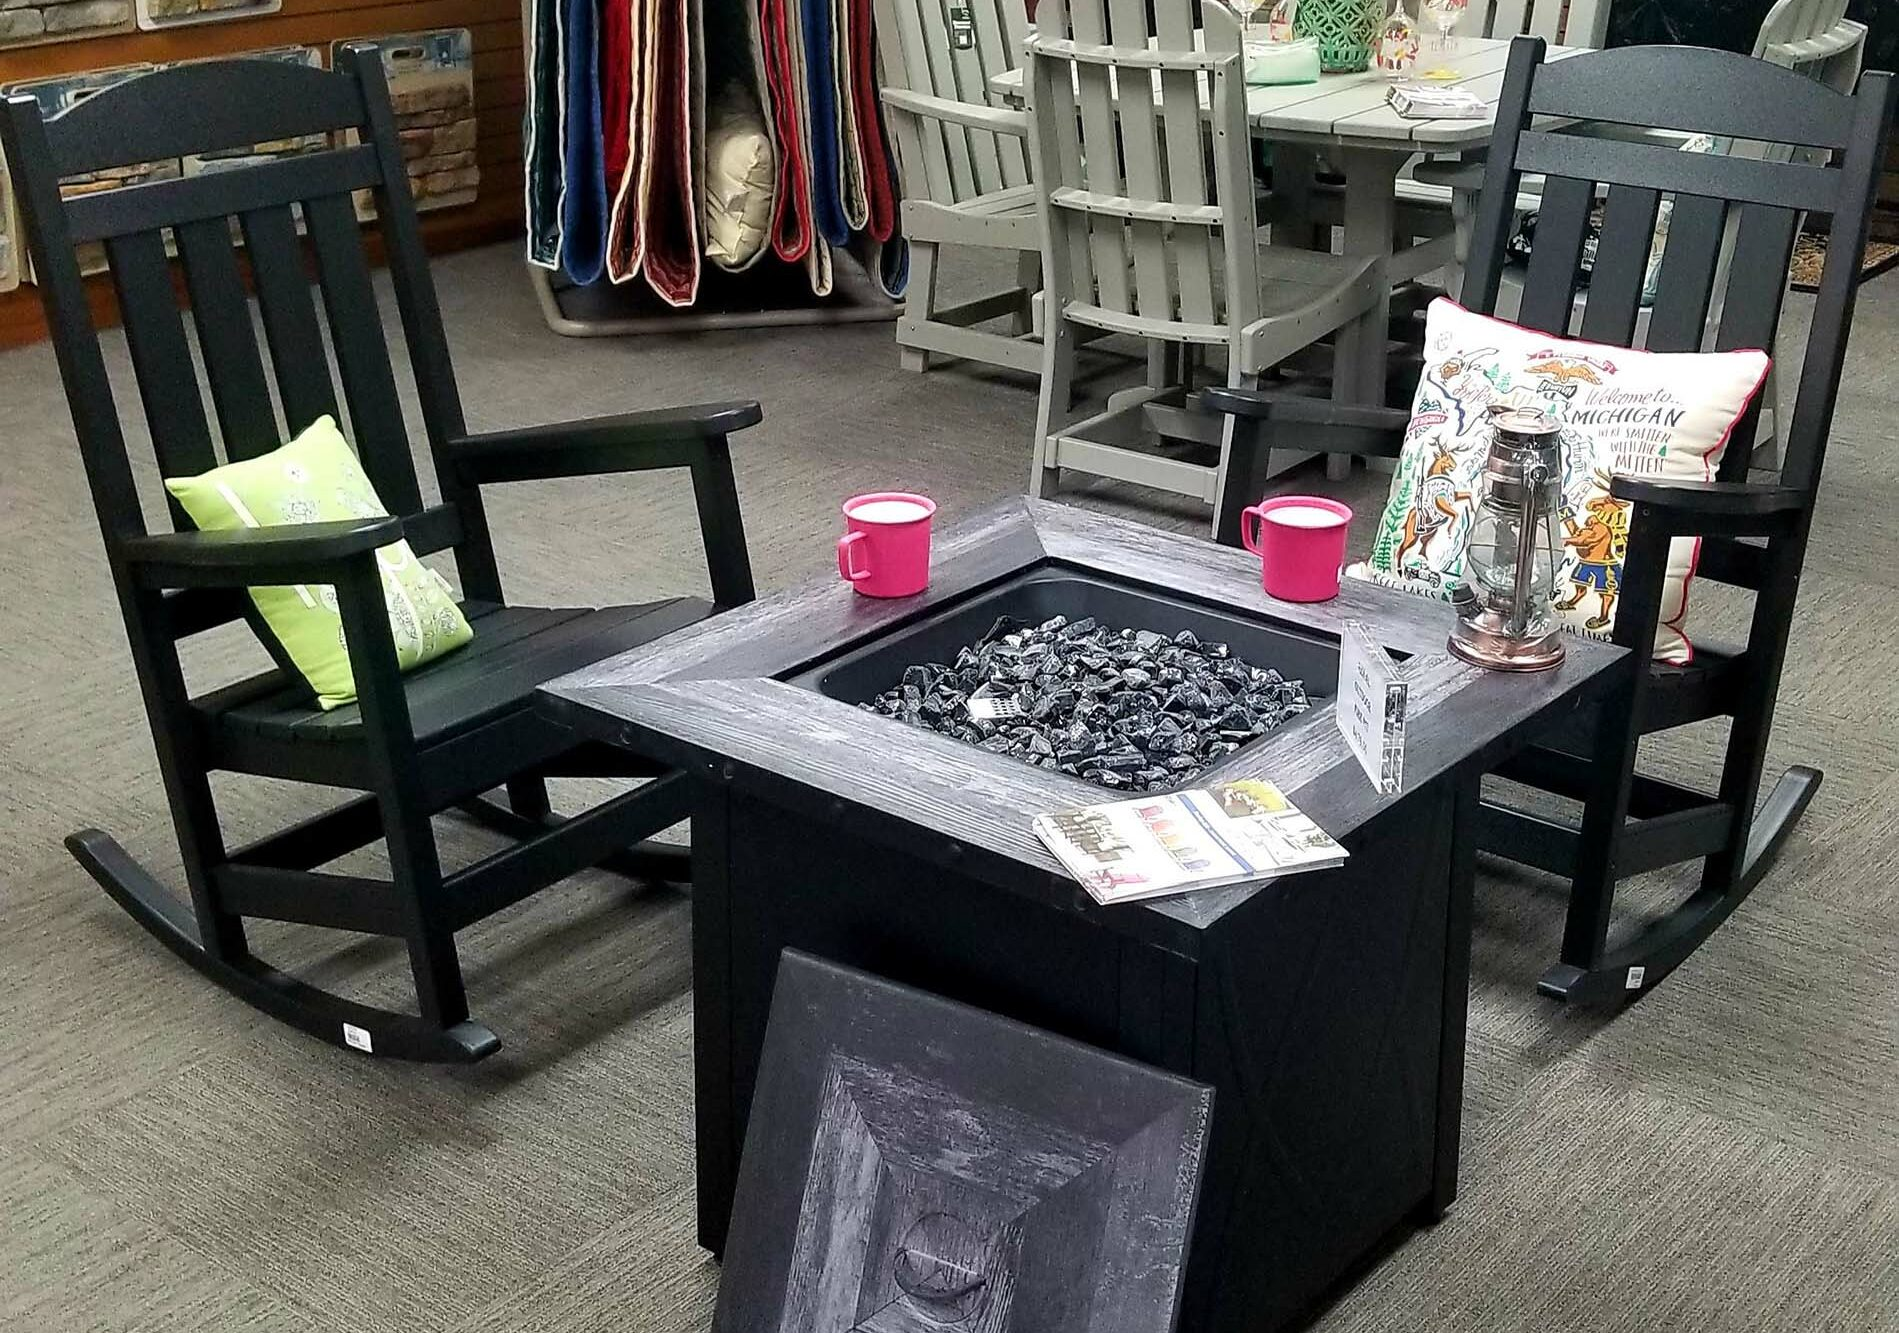 showroom display of outdoor fire pit tables at landscaping supply store